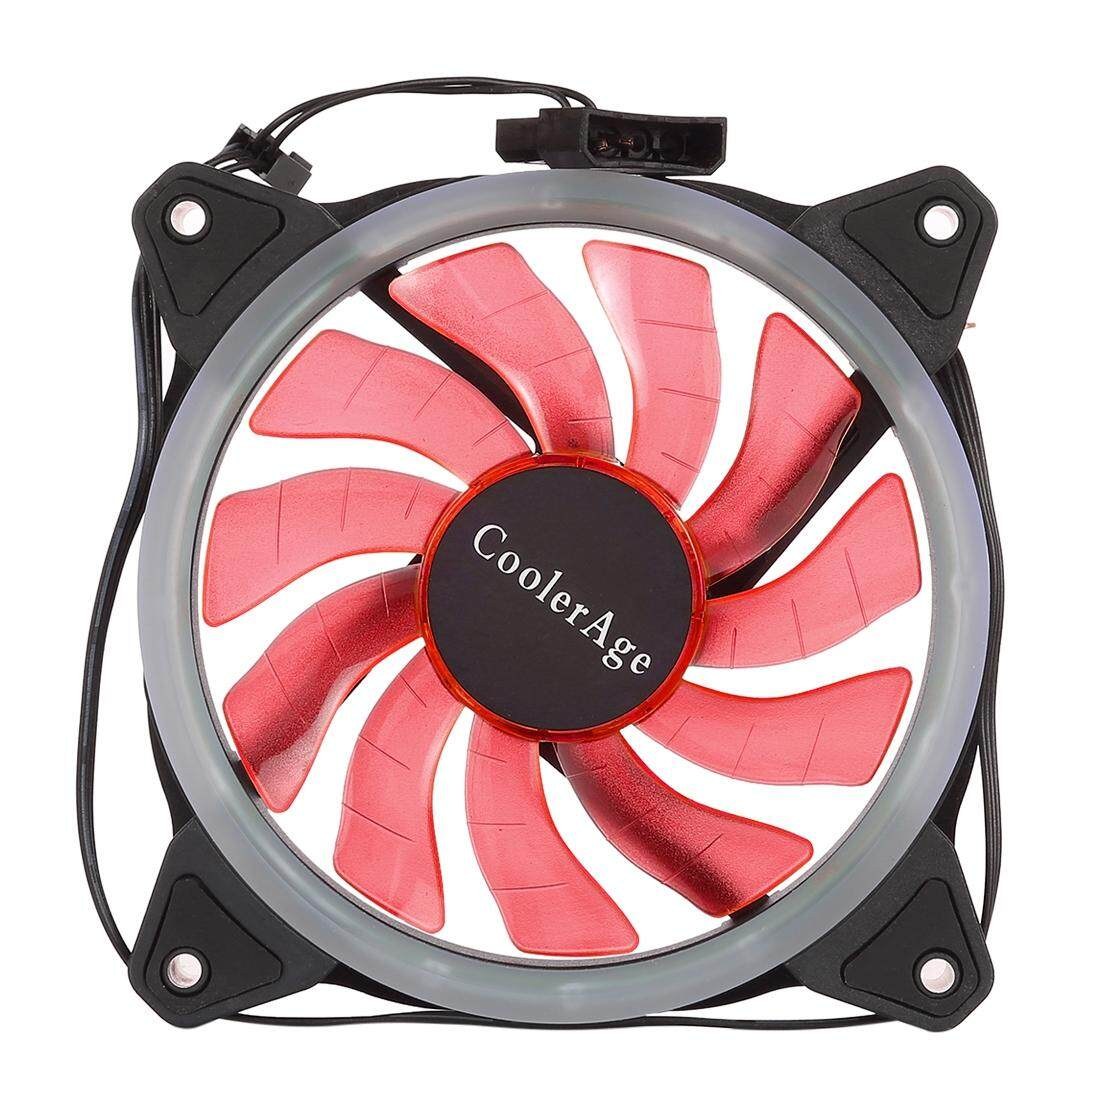 Color LED 12cm 3pin Computer Components Chassis Fan Computer Host Cooling Fan Silent Fan Cooling, with Power Connection Cable & Red Light(Red)